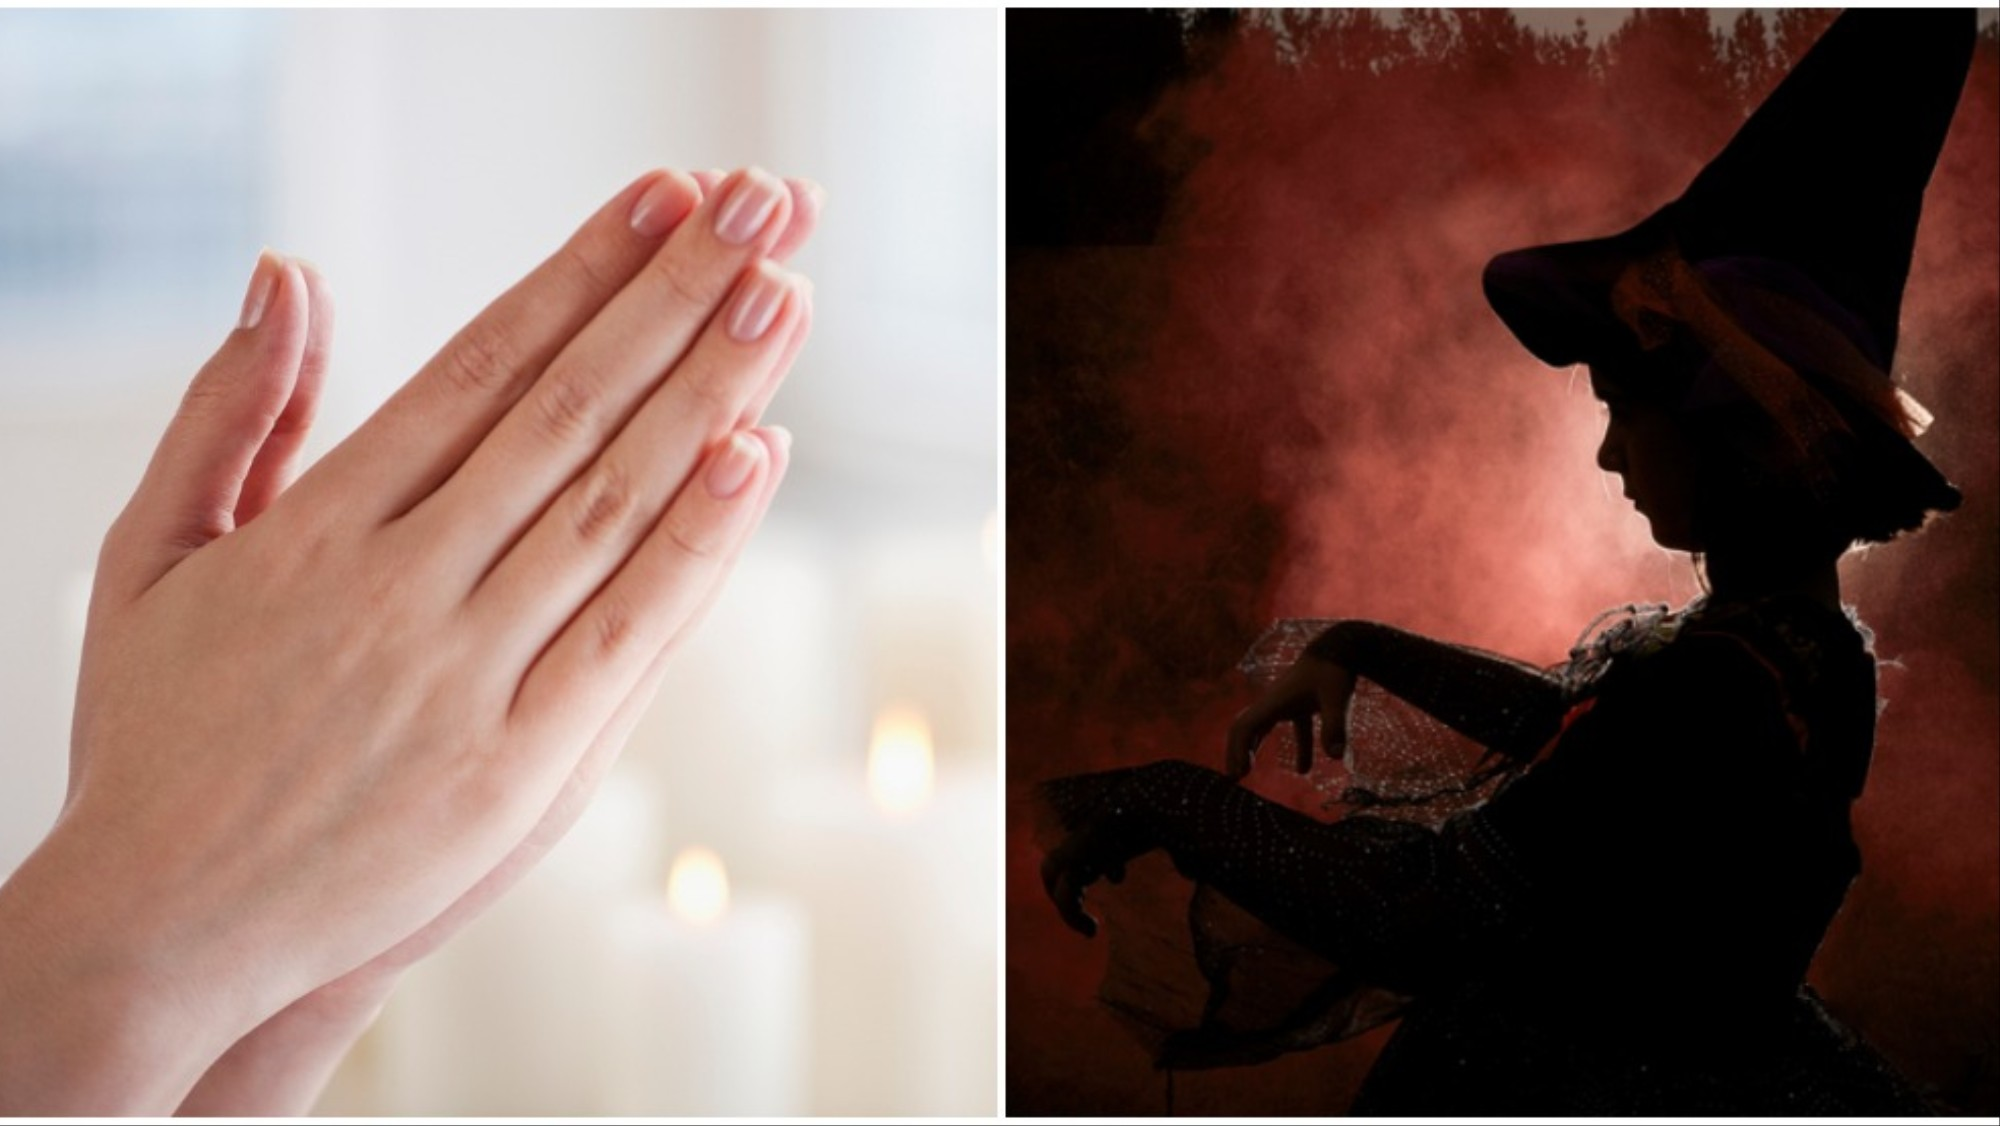 Hexes vs  Prayers: Christians and Witches Are Waging